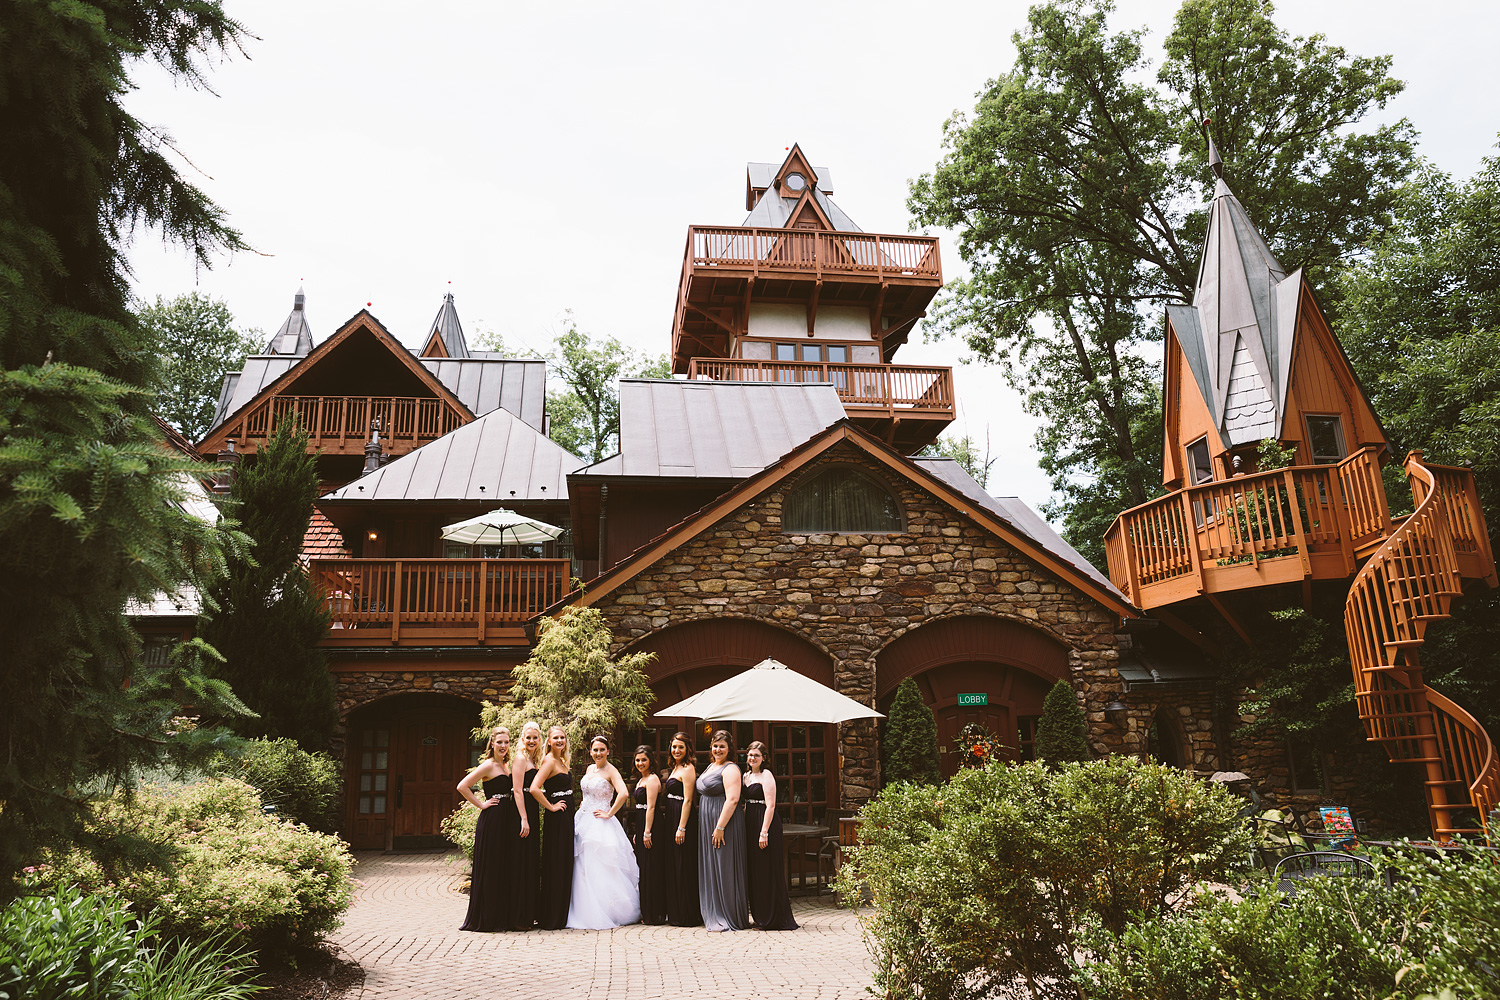 loudonville-ohio-wedding-photographers-landolls-mochican-castle_35.jpg